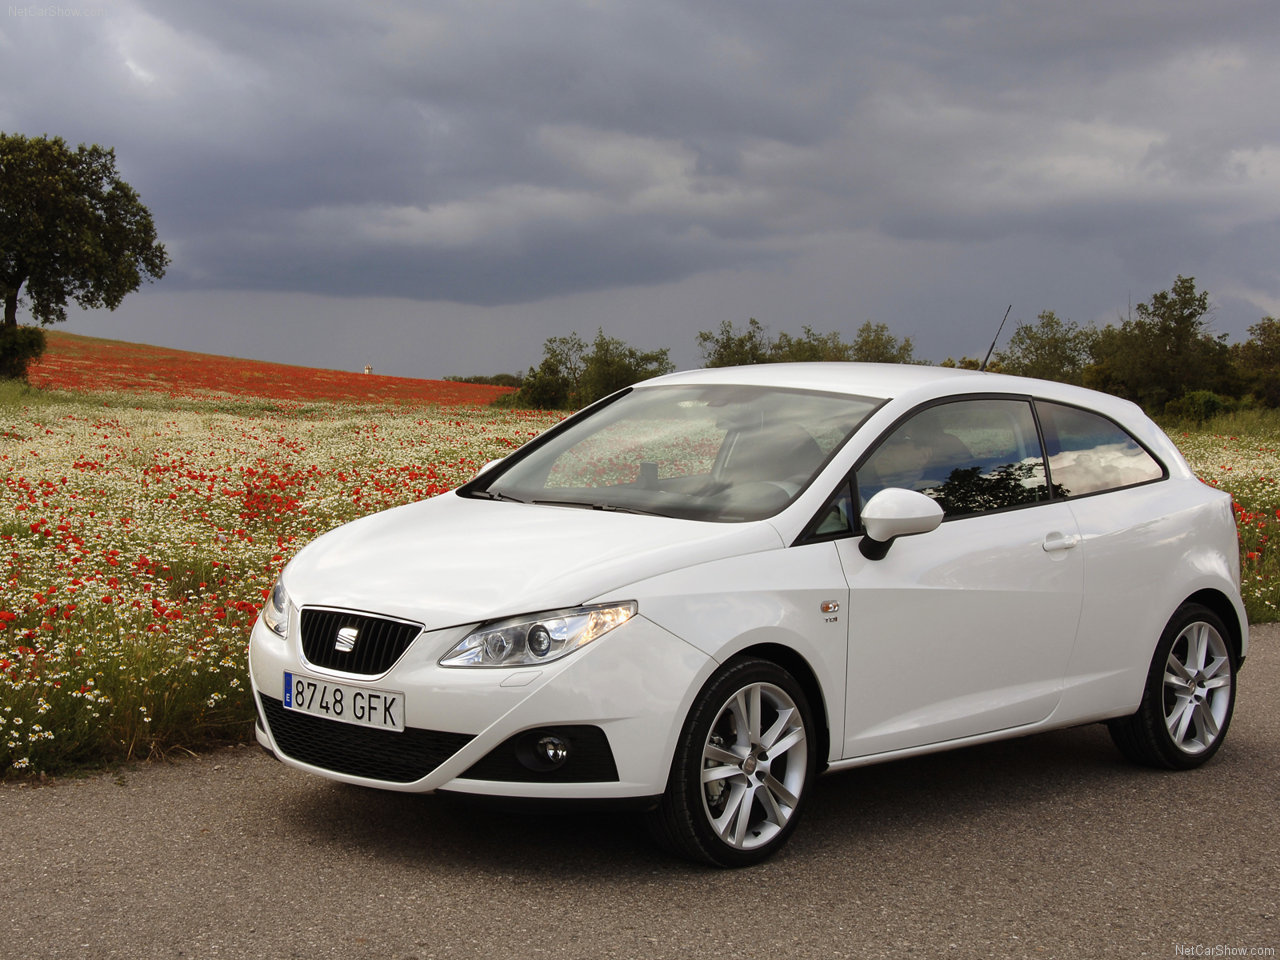 2008 Seat Ibiza SC Hatchback 3-door